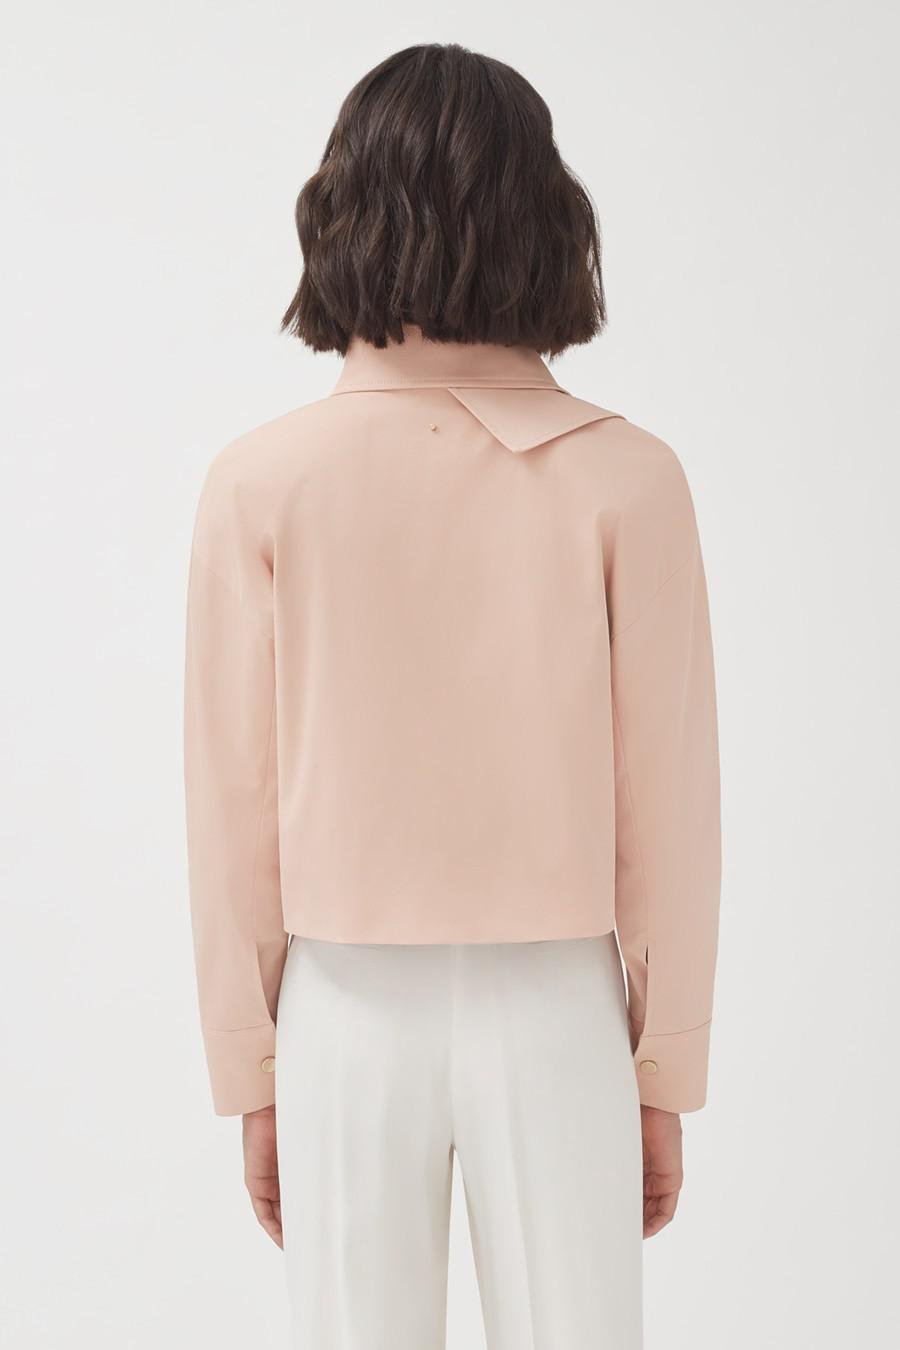 Women's Cropped Trench in Soft Rose | Size: S/M | Cotton Elastane Blend by Cuyana 3